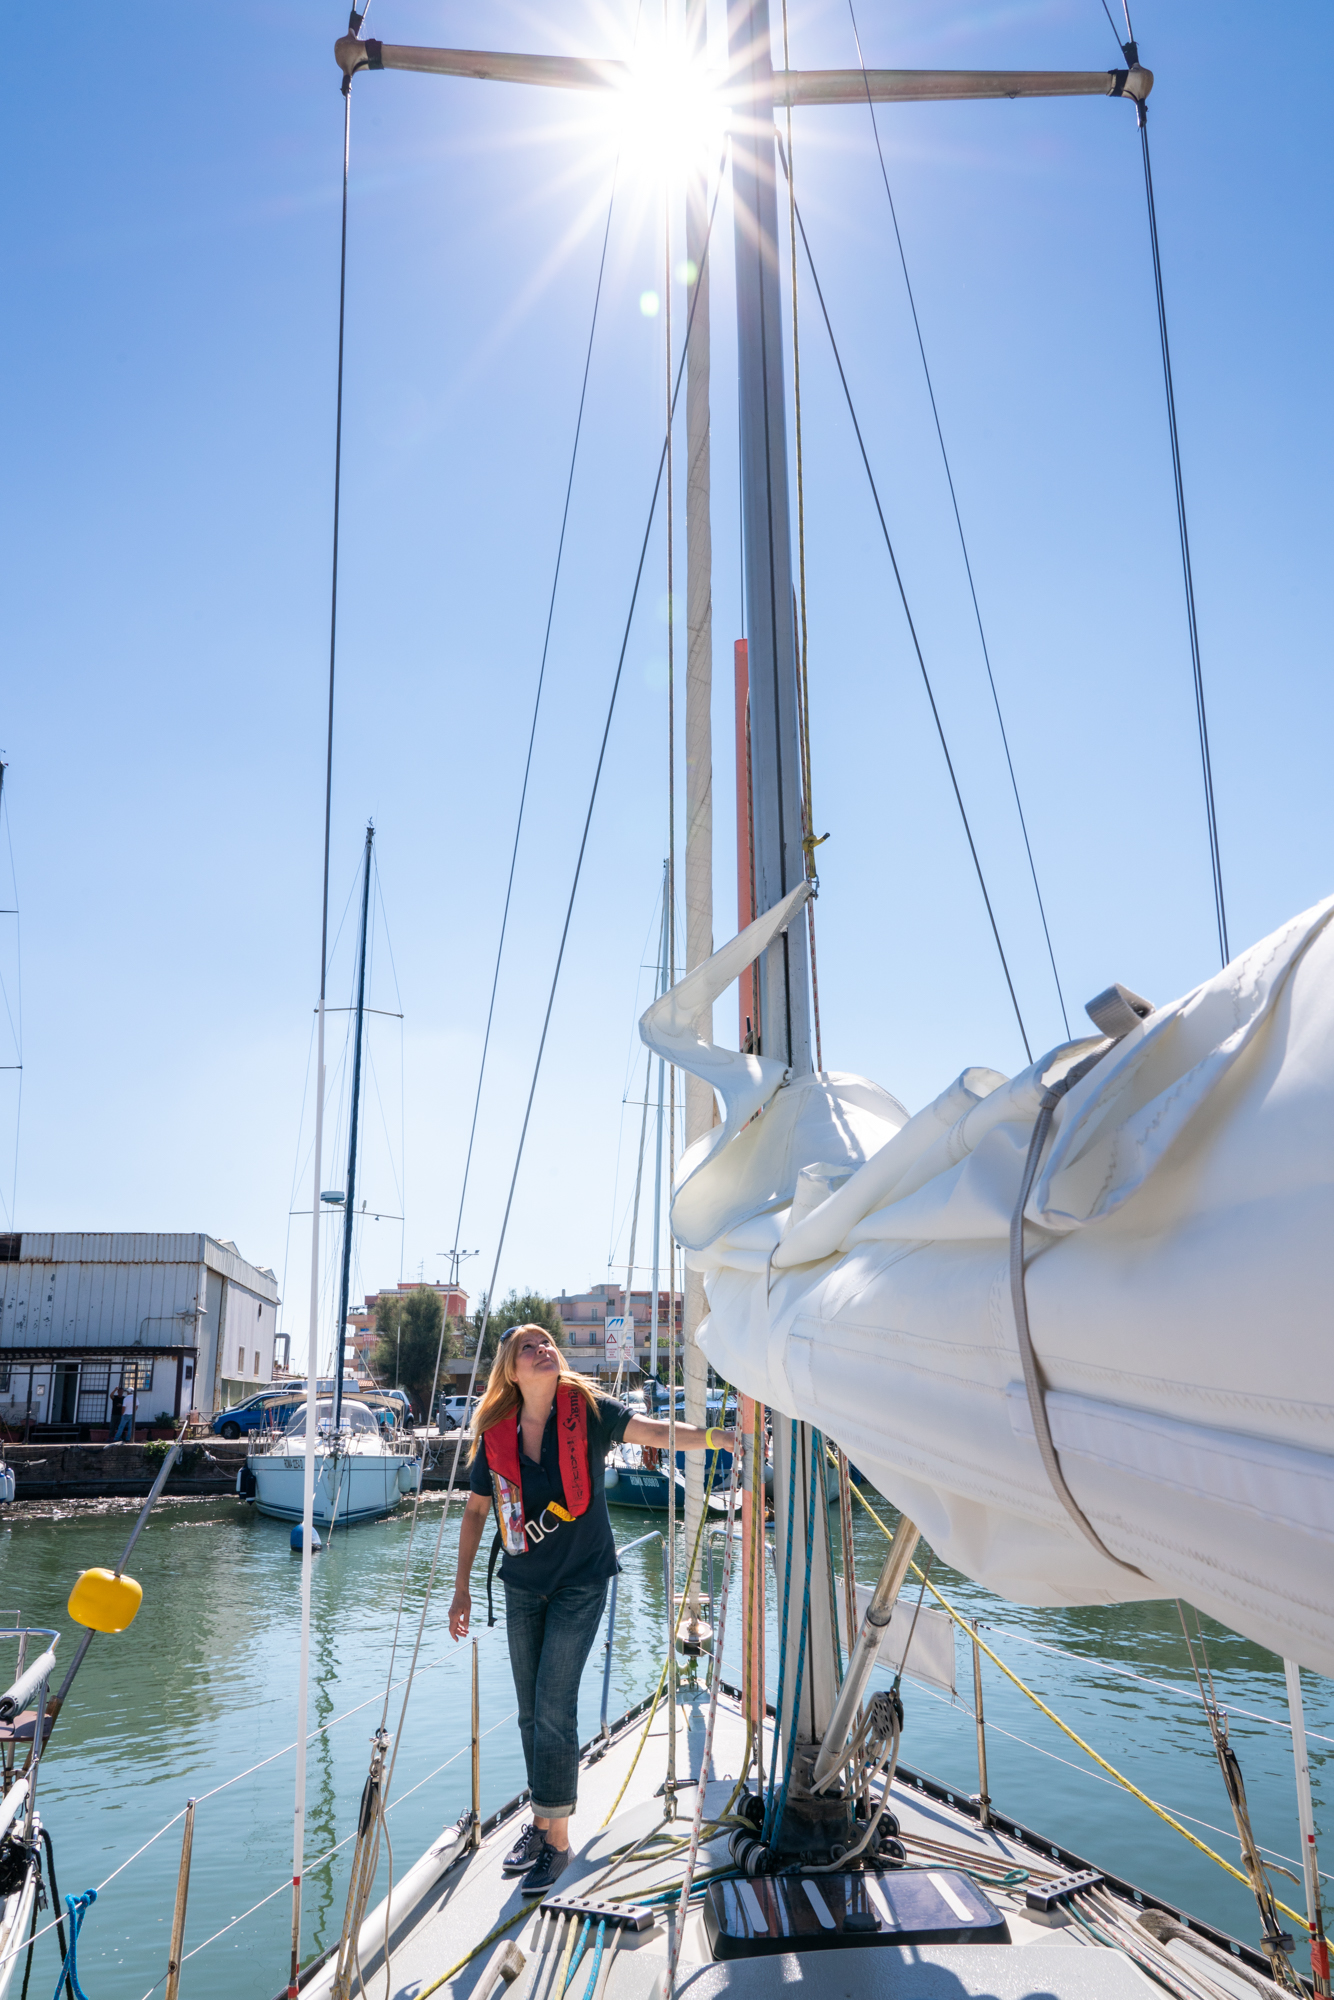 Patrizia performs routine checks of the sailboat before sailing off at the Fiumicino Harbor in Italy.